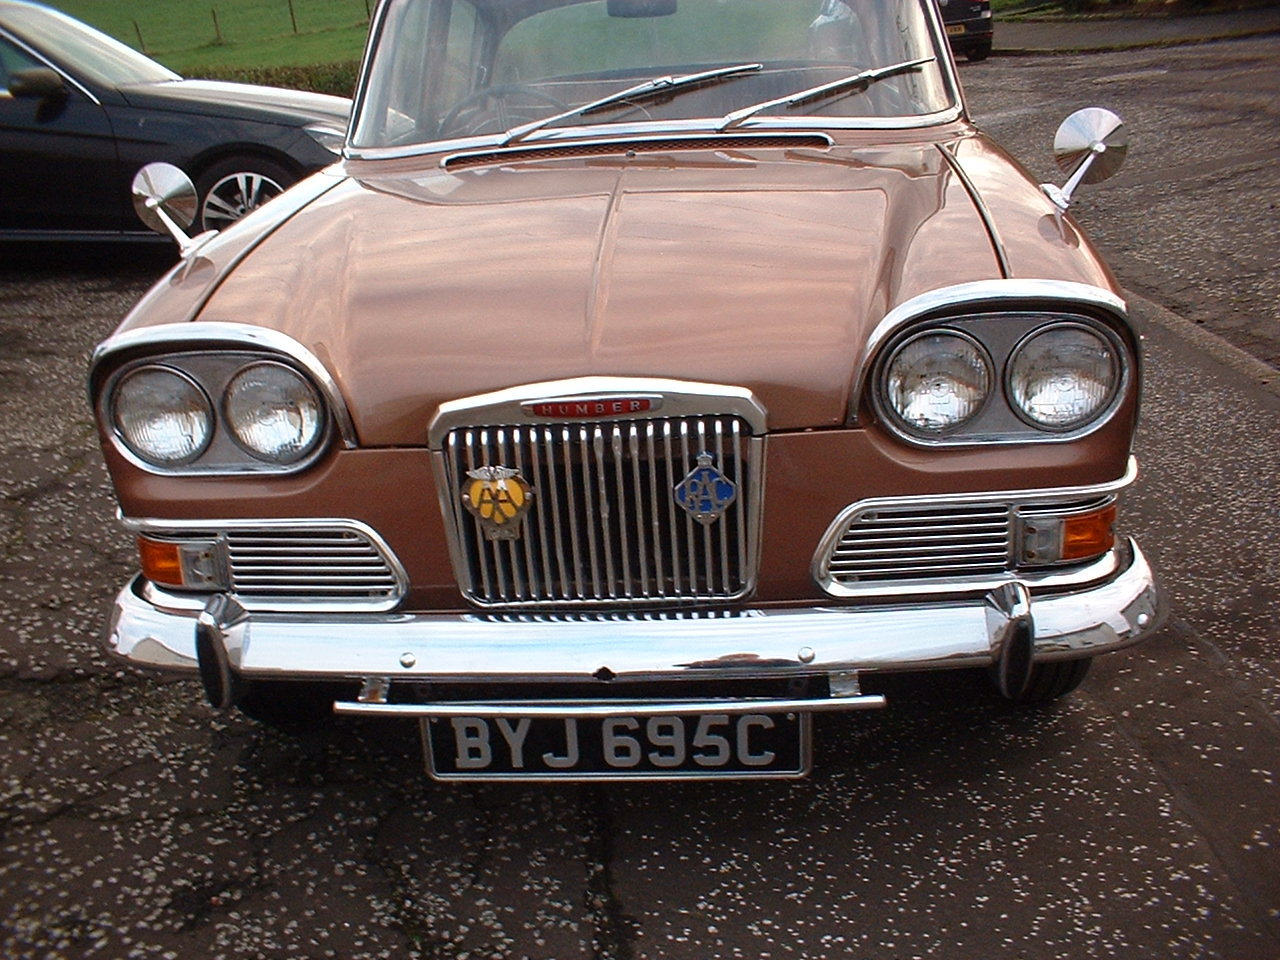 1965 Humber Mk1 Sceptre  SOLD (picture 1 of 2)